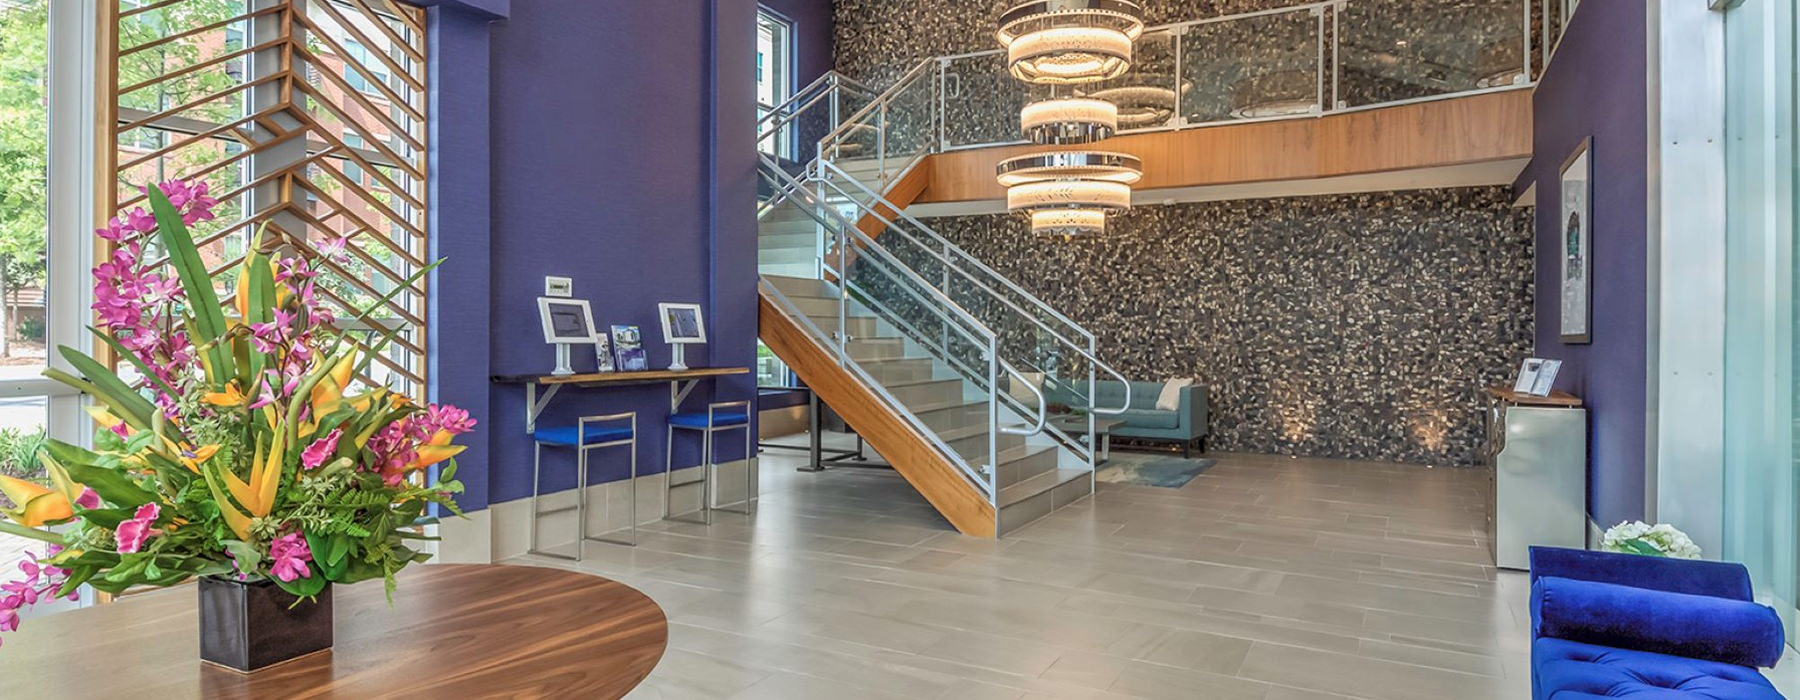 Beautiful welcoming two-story lobby